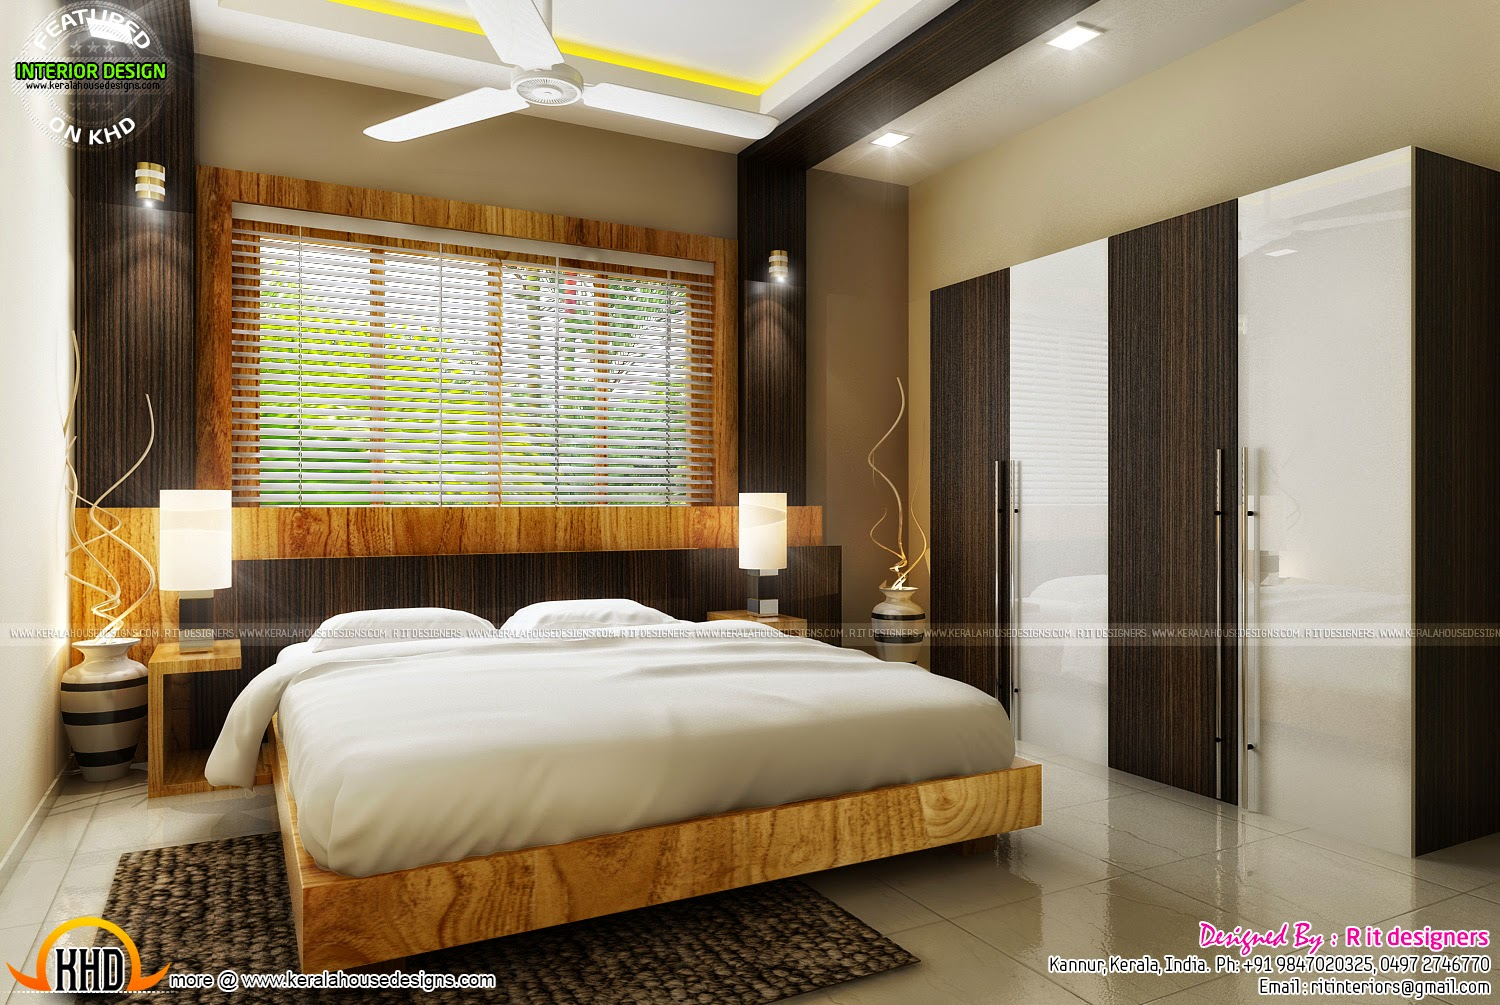 Home wallpaper cost india wallpaper home for Bedroom wallpaper designs india